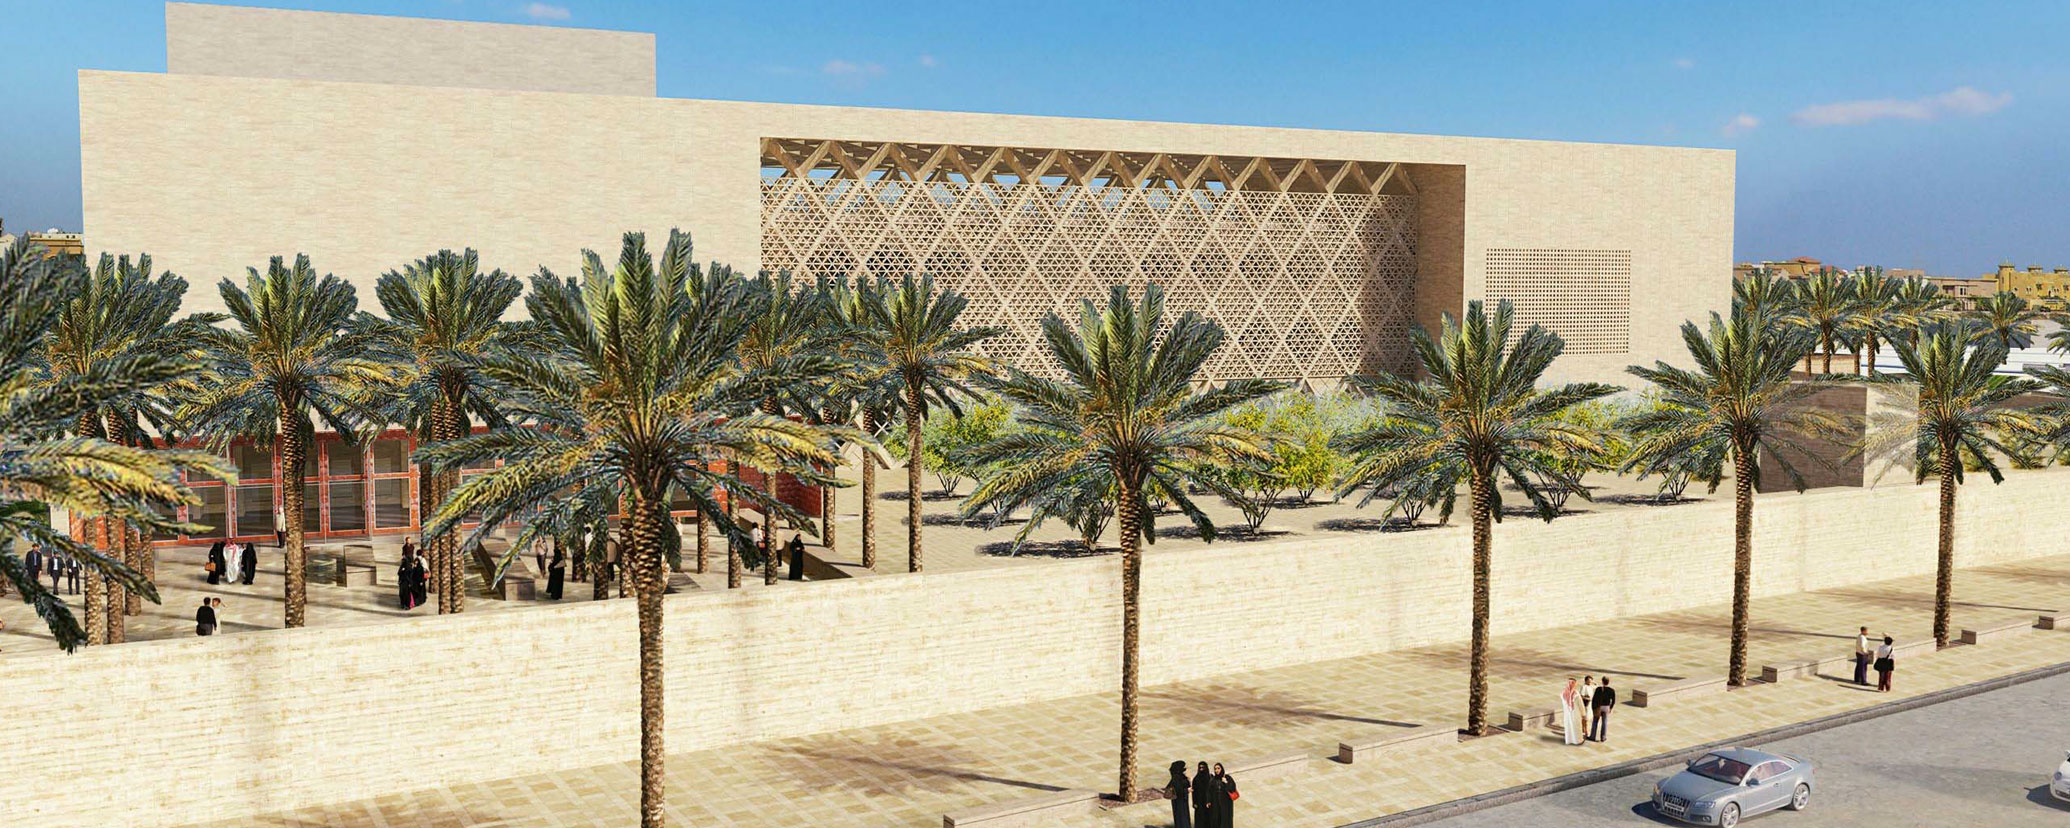 U S  Consulate Dhahran, Saudi Arabia - Caddell Construction Co , LLC